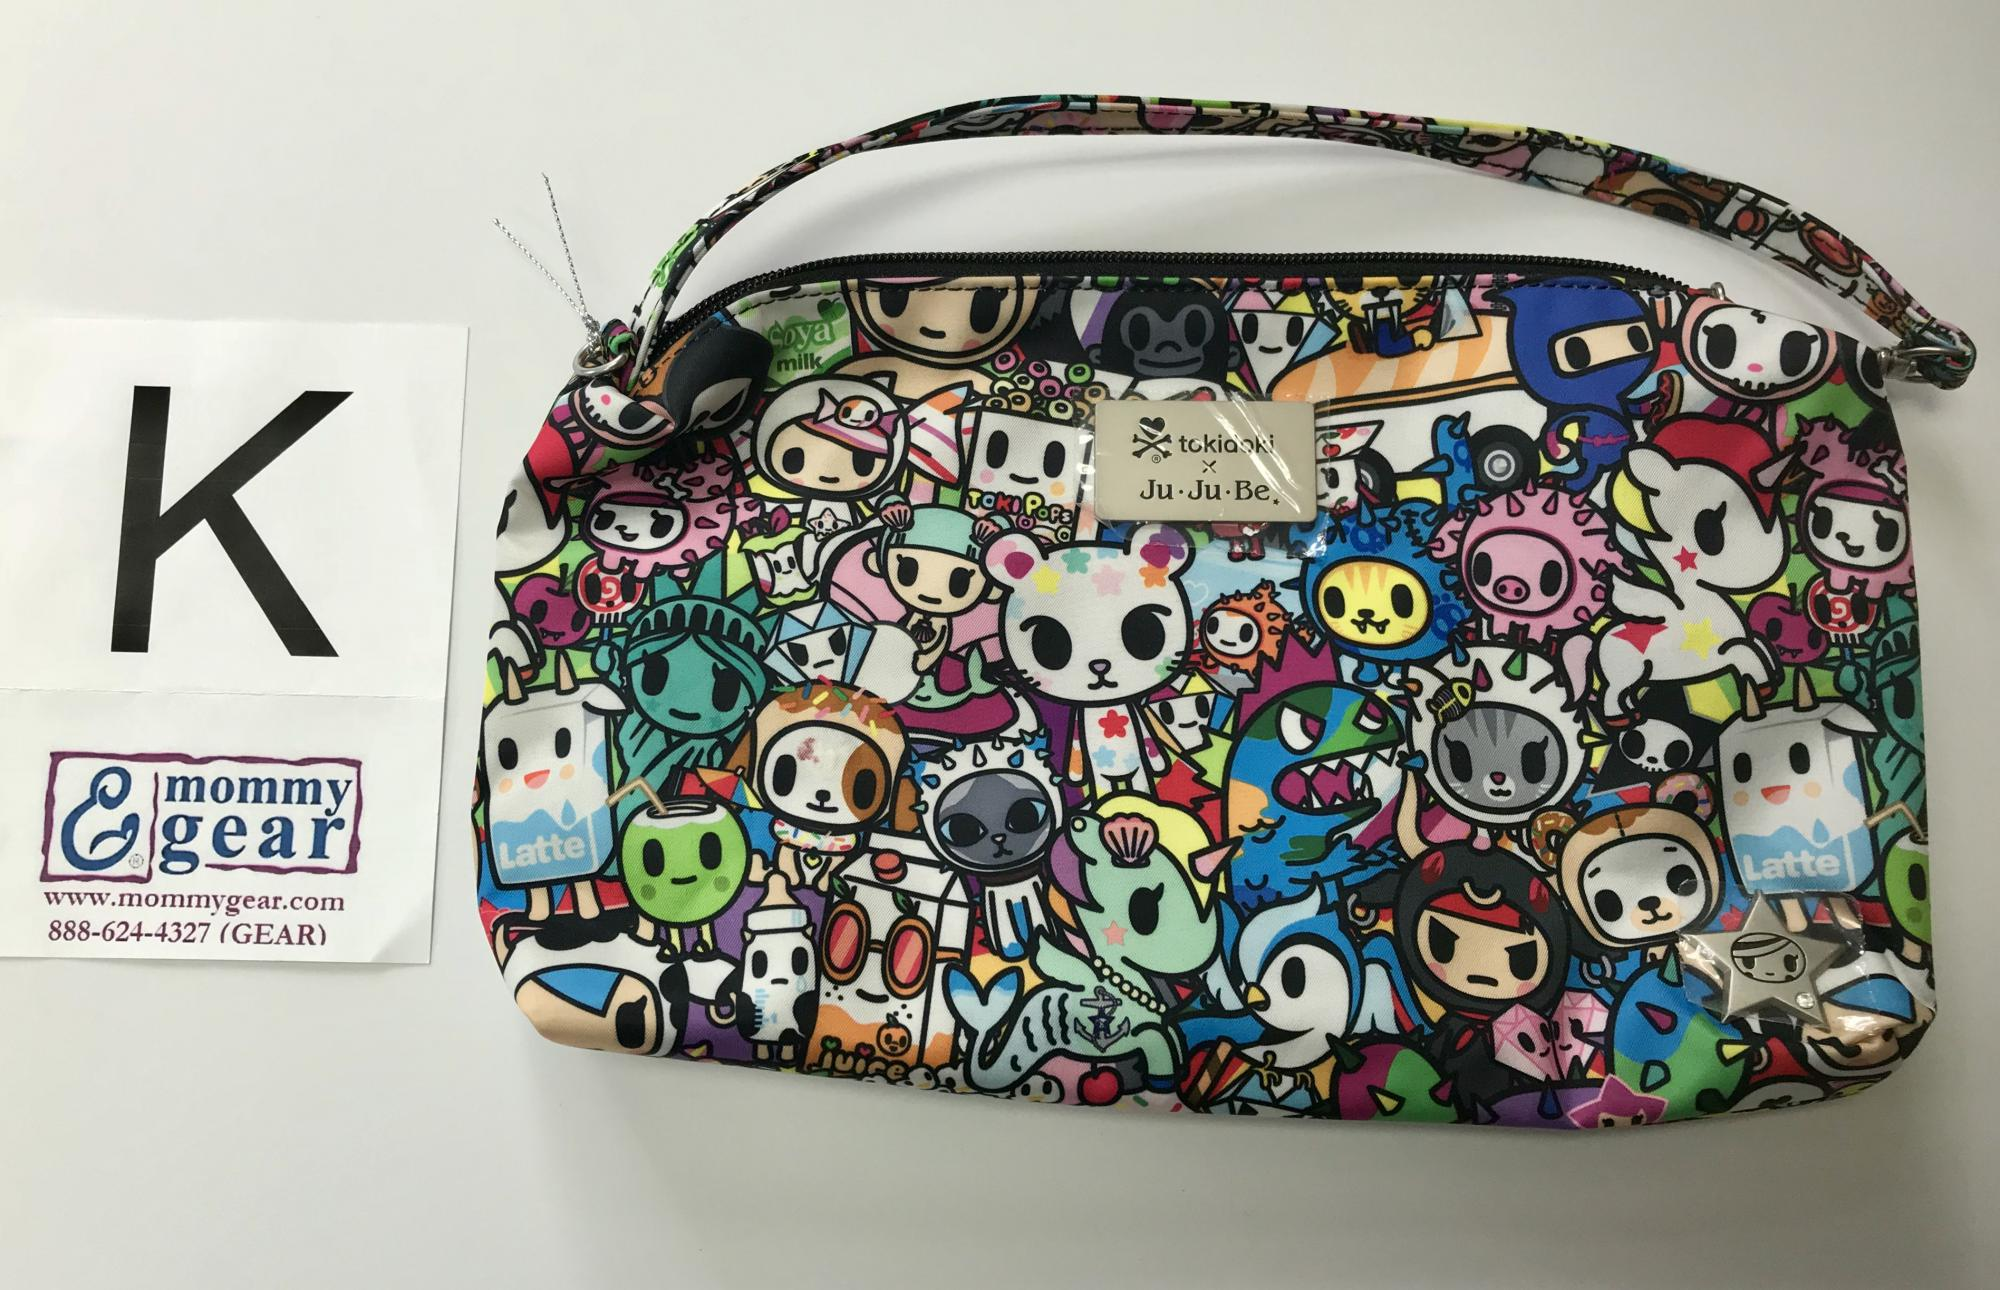 ju-ju-be-tokidoki-iconic-2.0-be-quick-pp-k.jpg